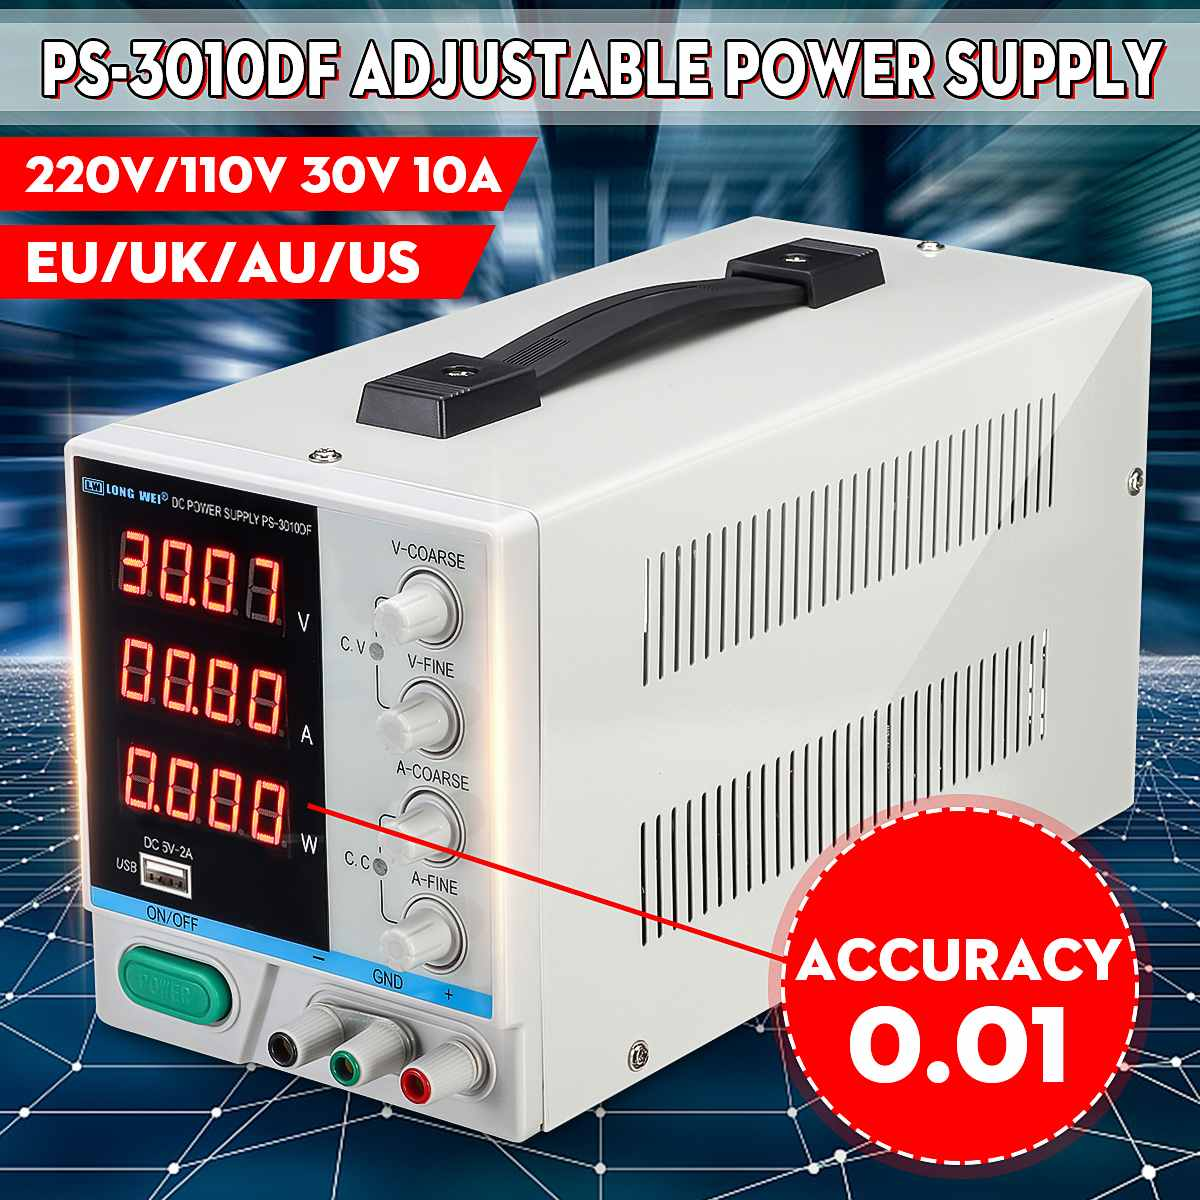 High Precision High Power Adjustable LED Display Switching DC Power Supply 10V/220V0~30V 0~10A  For Laboratory and TeachingHigh Precision High Power Adjustable LED Display Switching DC Power Supply 10V/220V0~30V 0~10A  For Laboratory and Teaching